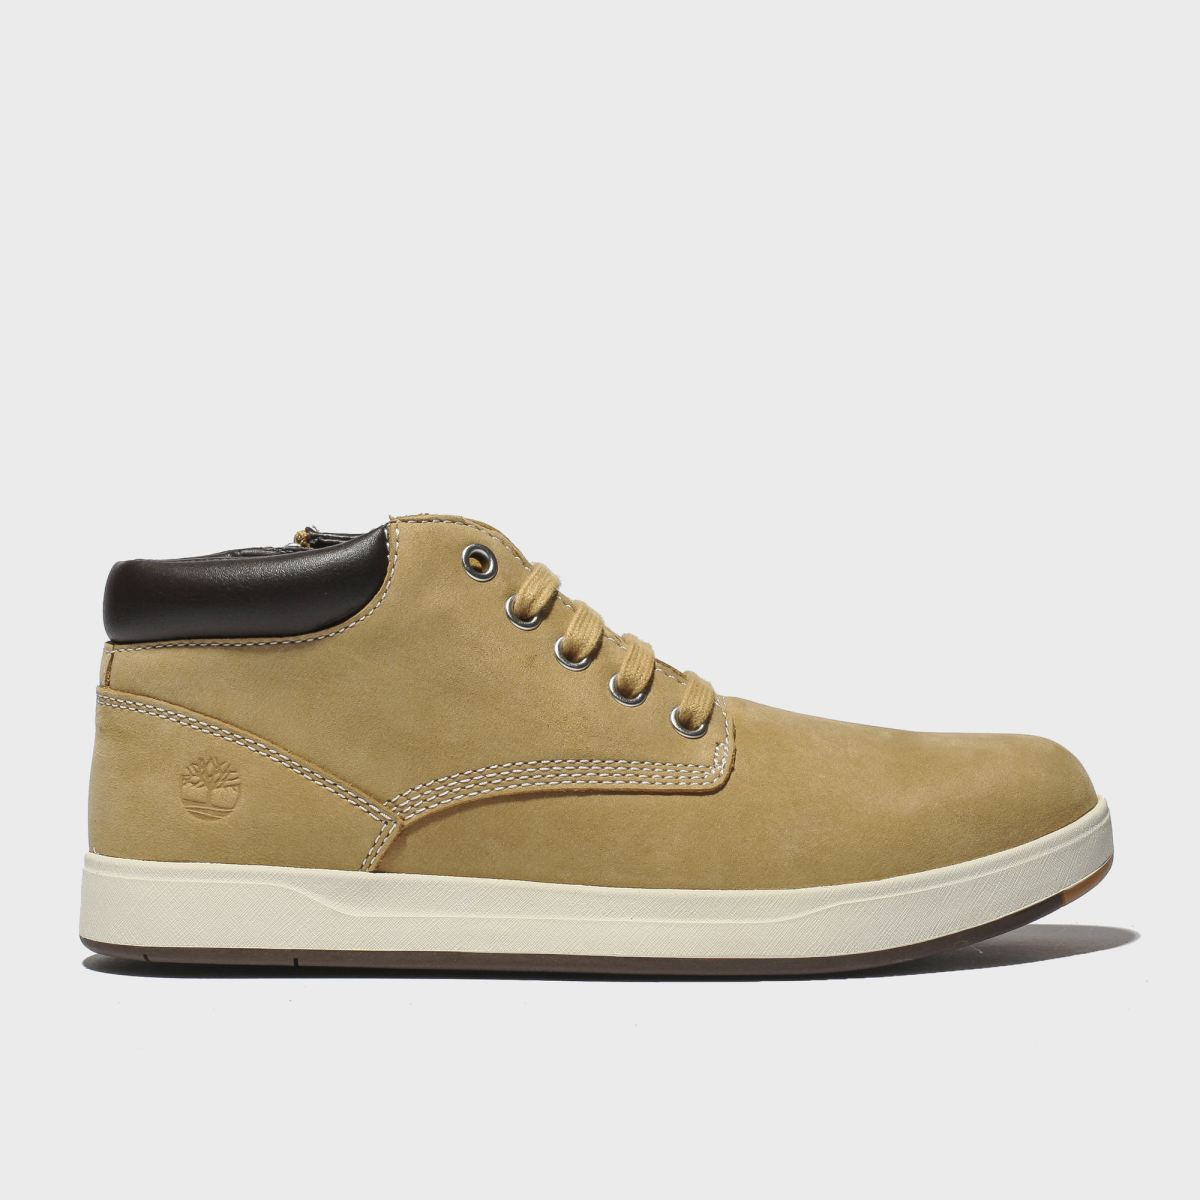 Timberland Natural Davis Square Boots Youth